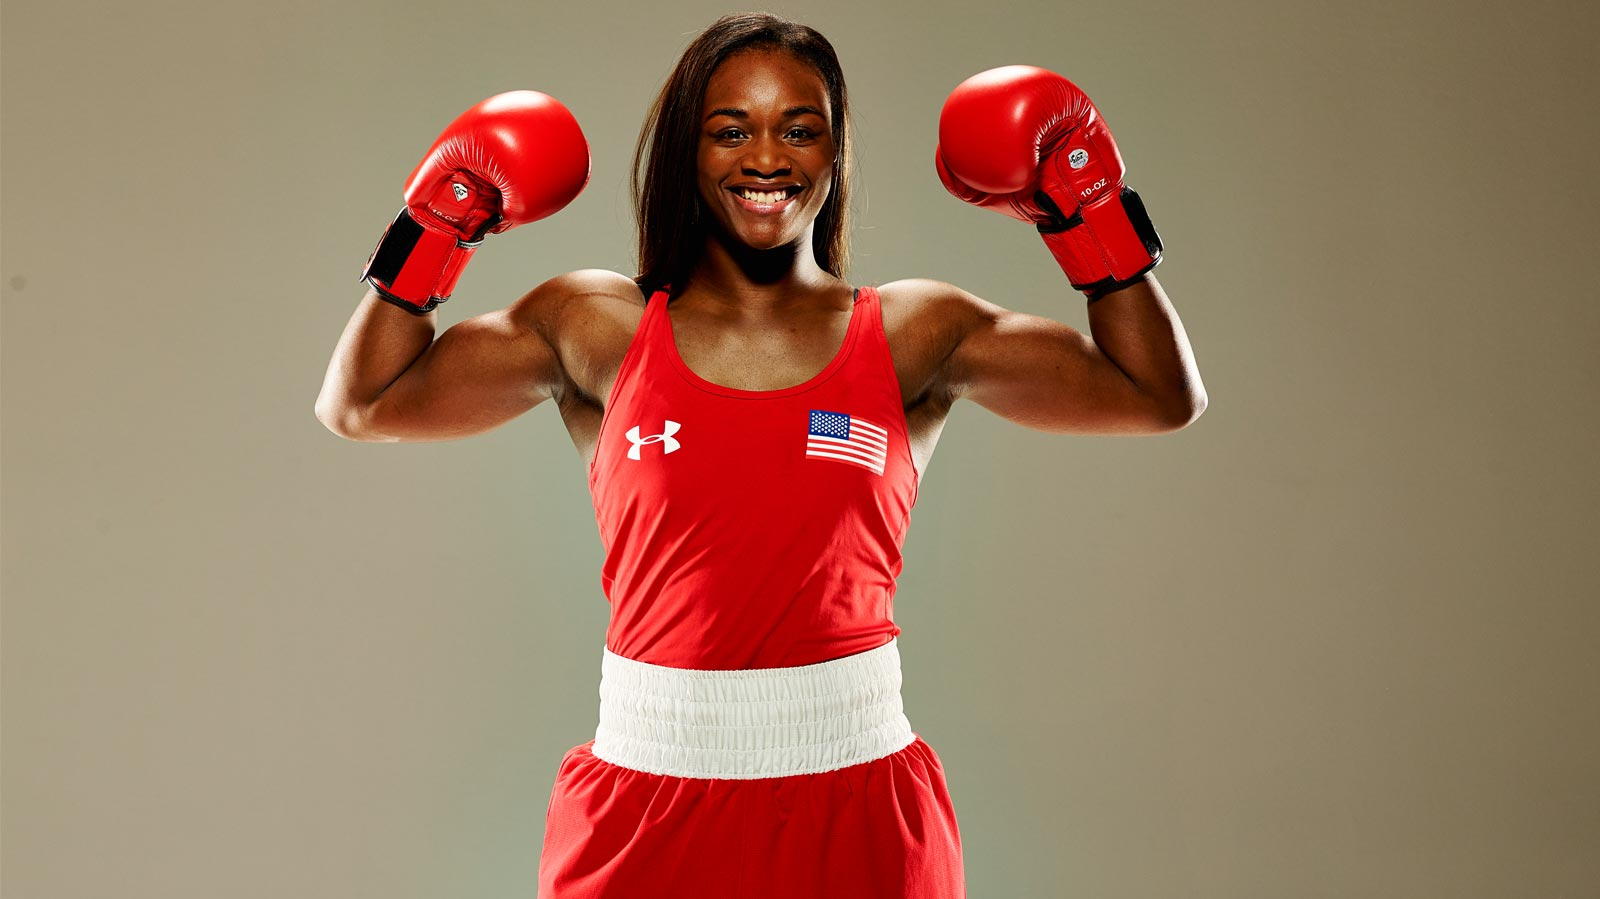 14 rows· List of female boxers. Jump to navigation Jump to search. This is a list of notable female .